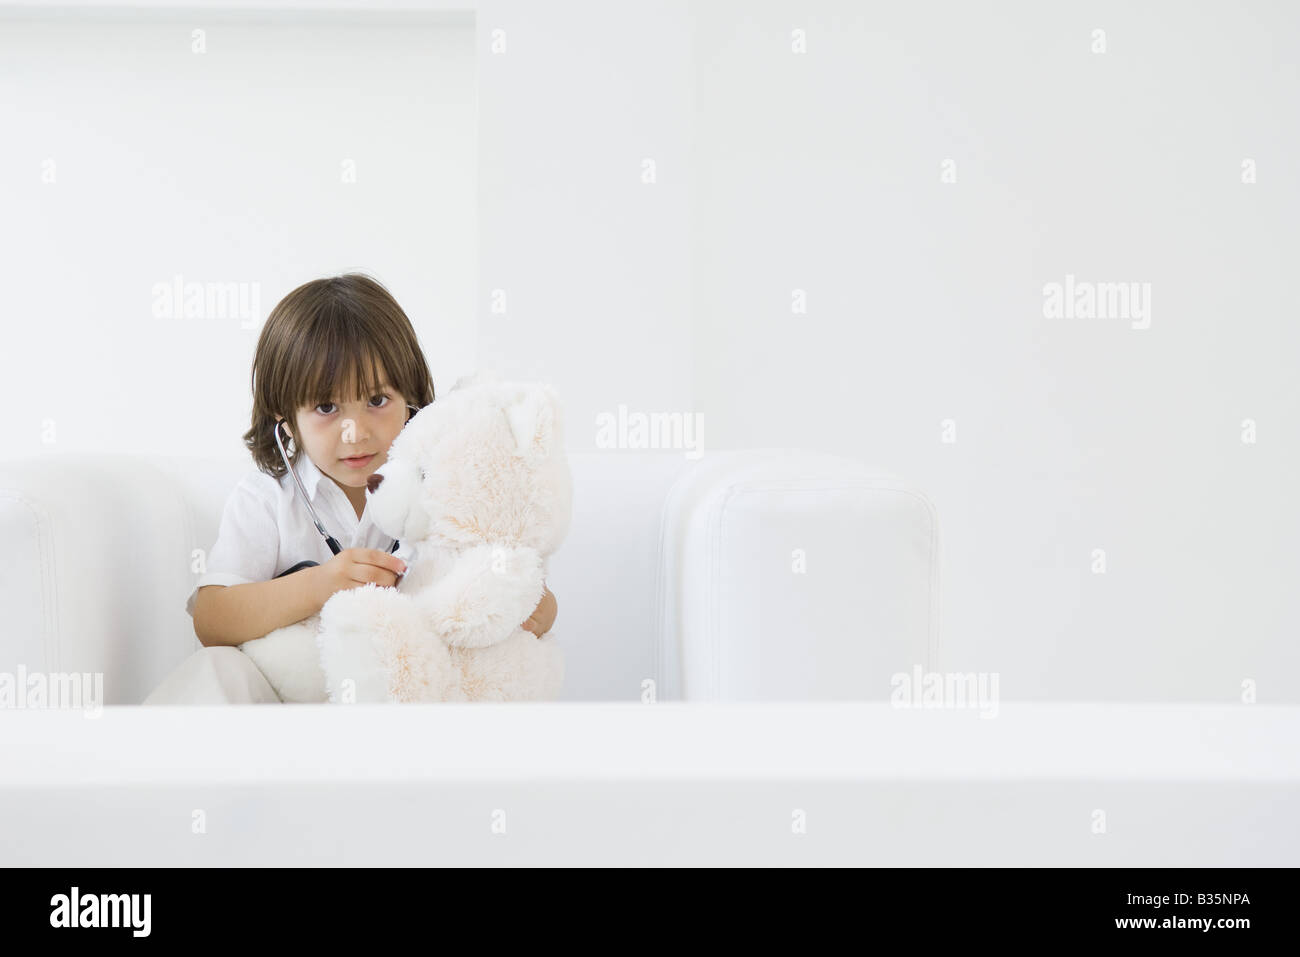 Little boy playing doctor with teddy bear, using stethoscope - Stock Image